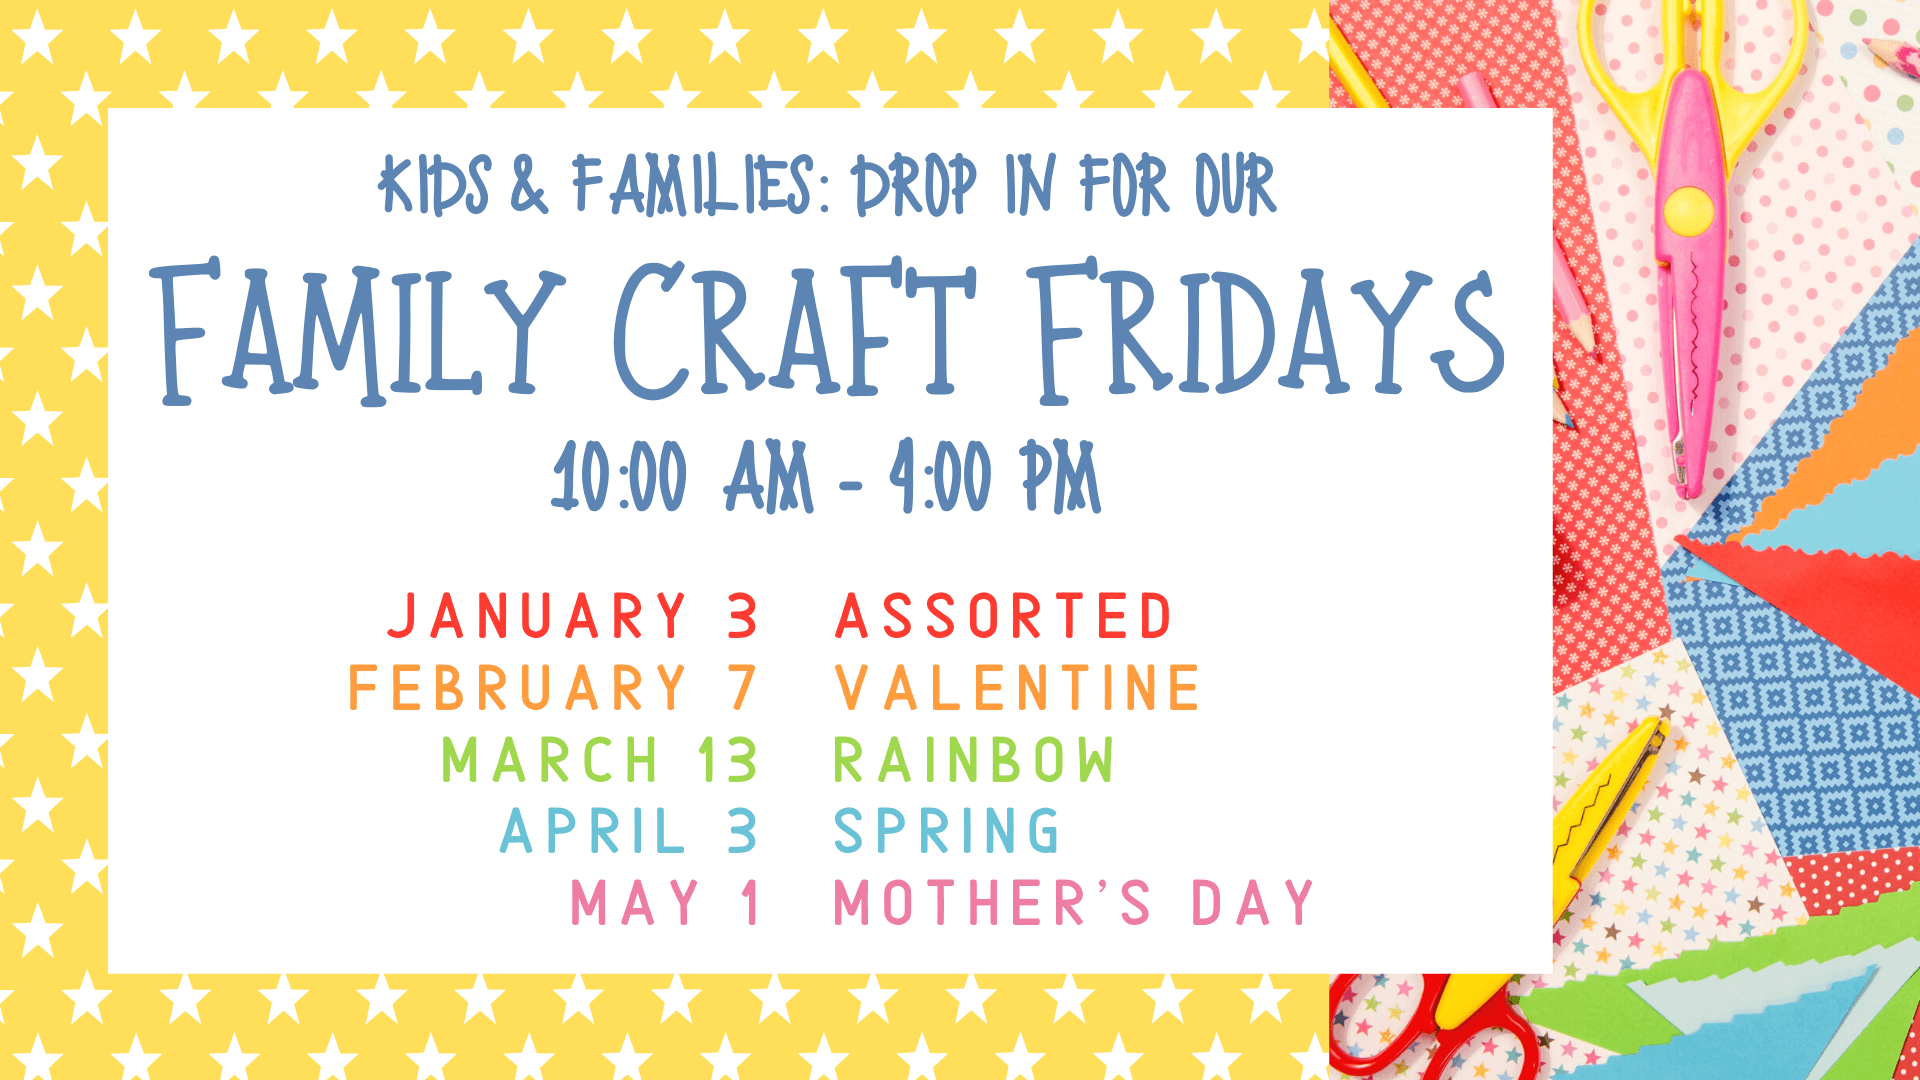 Family Craft Fridays @ Youth Services Department